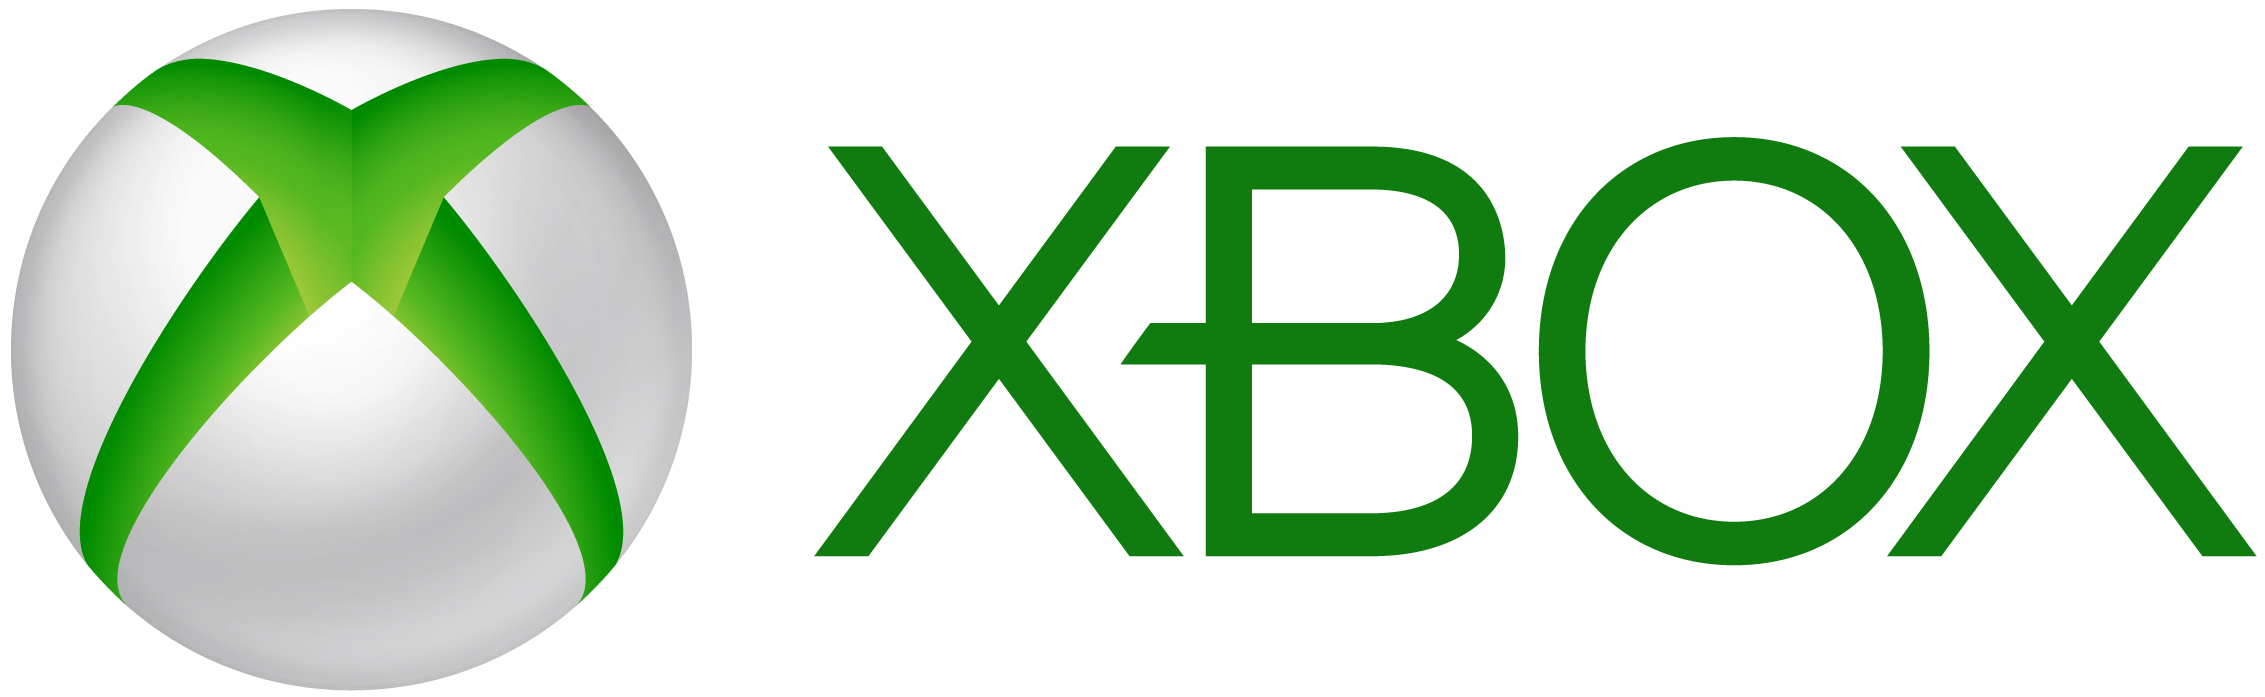 Xbox 2013 Logo DISTRICT C 11